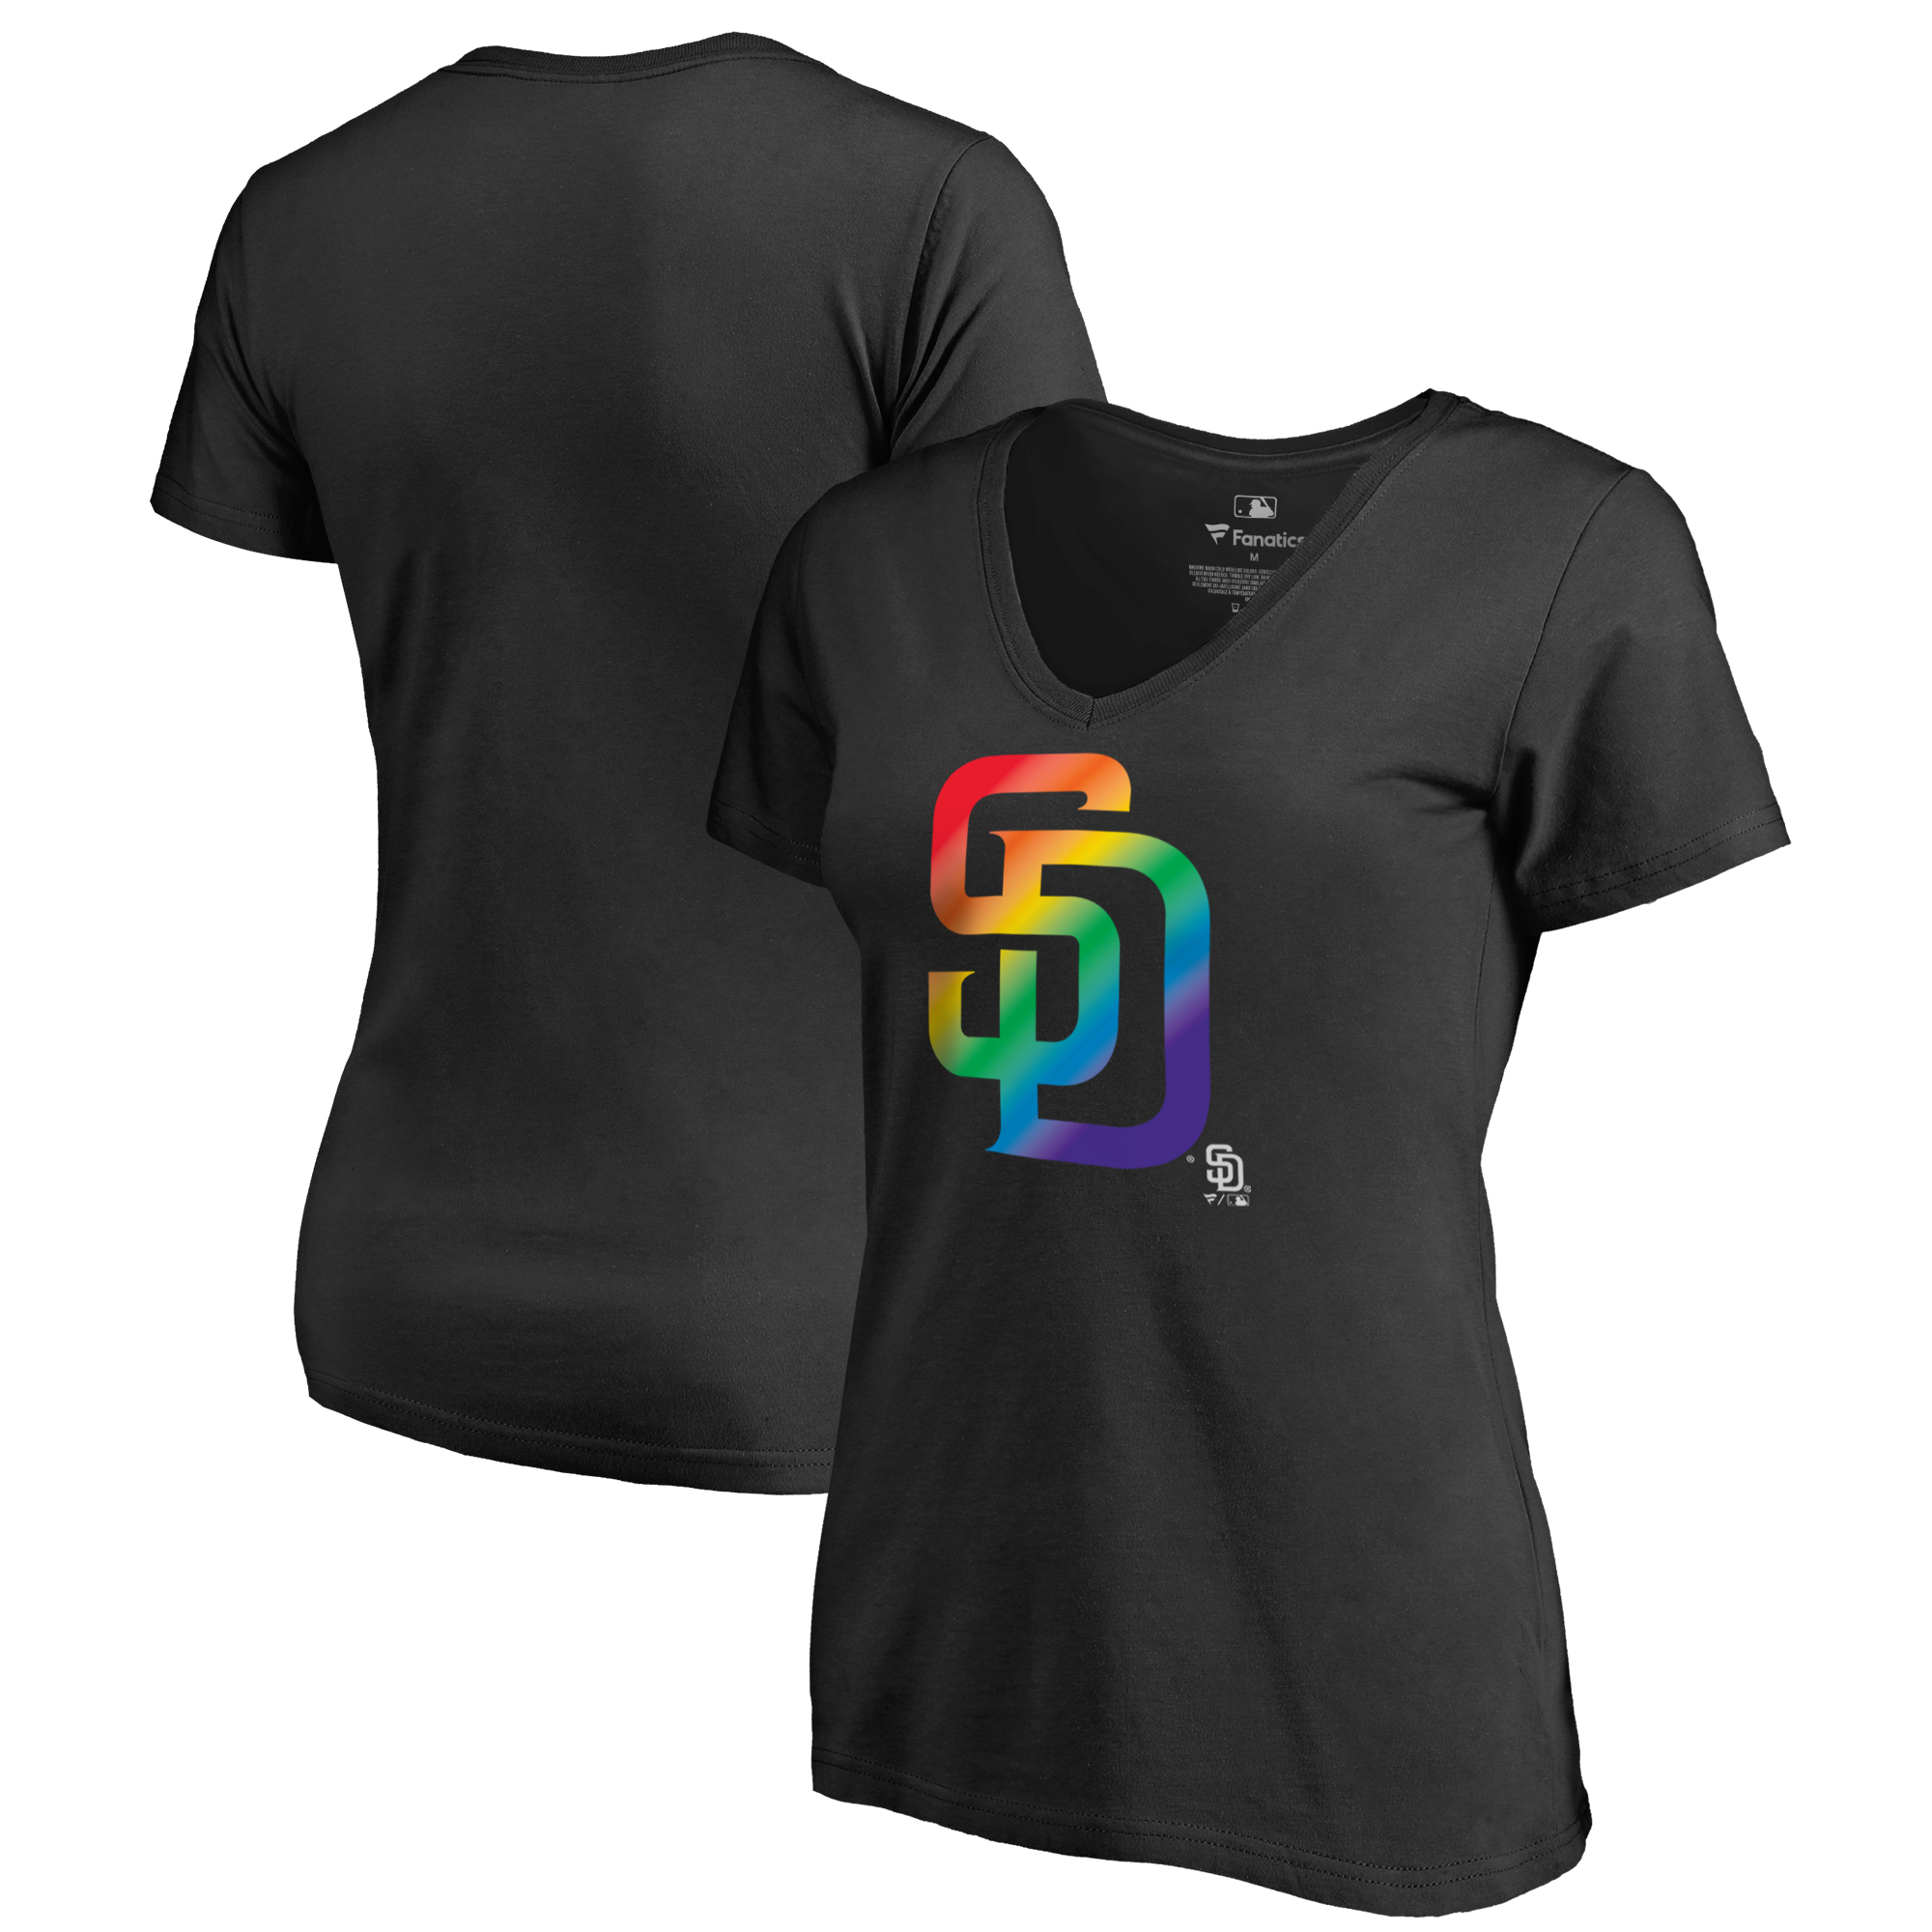 San Diego Padres Fanatics Branded Women's Pride T-Shirt - Black